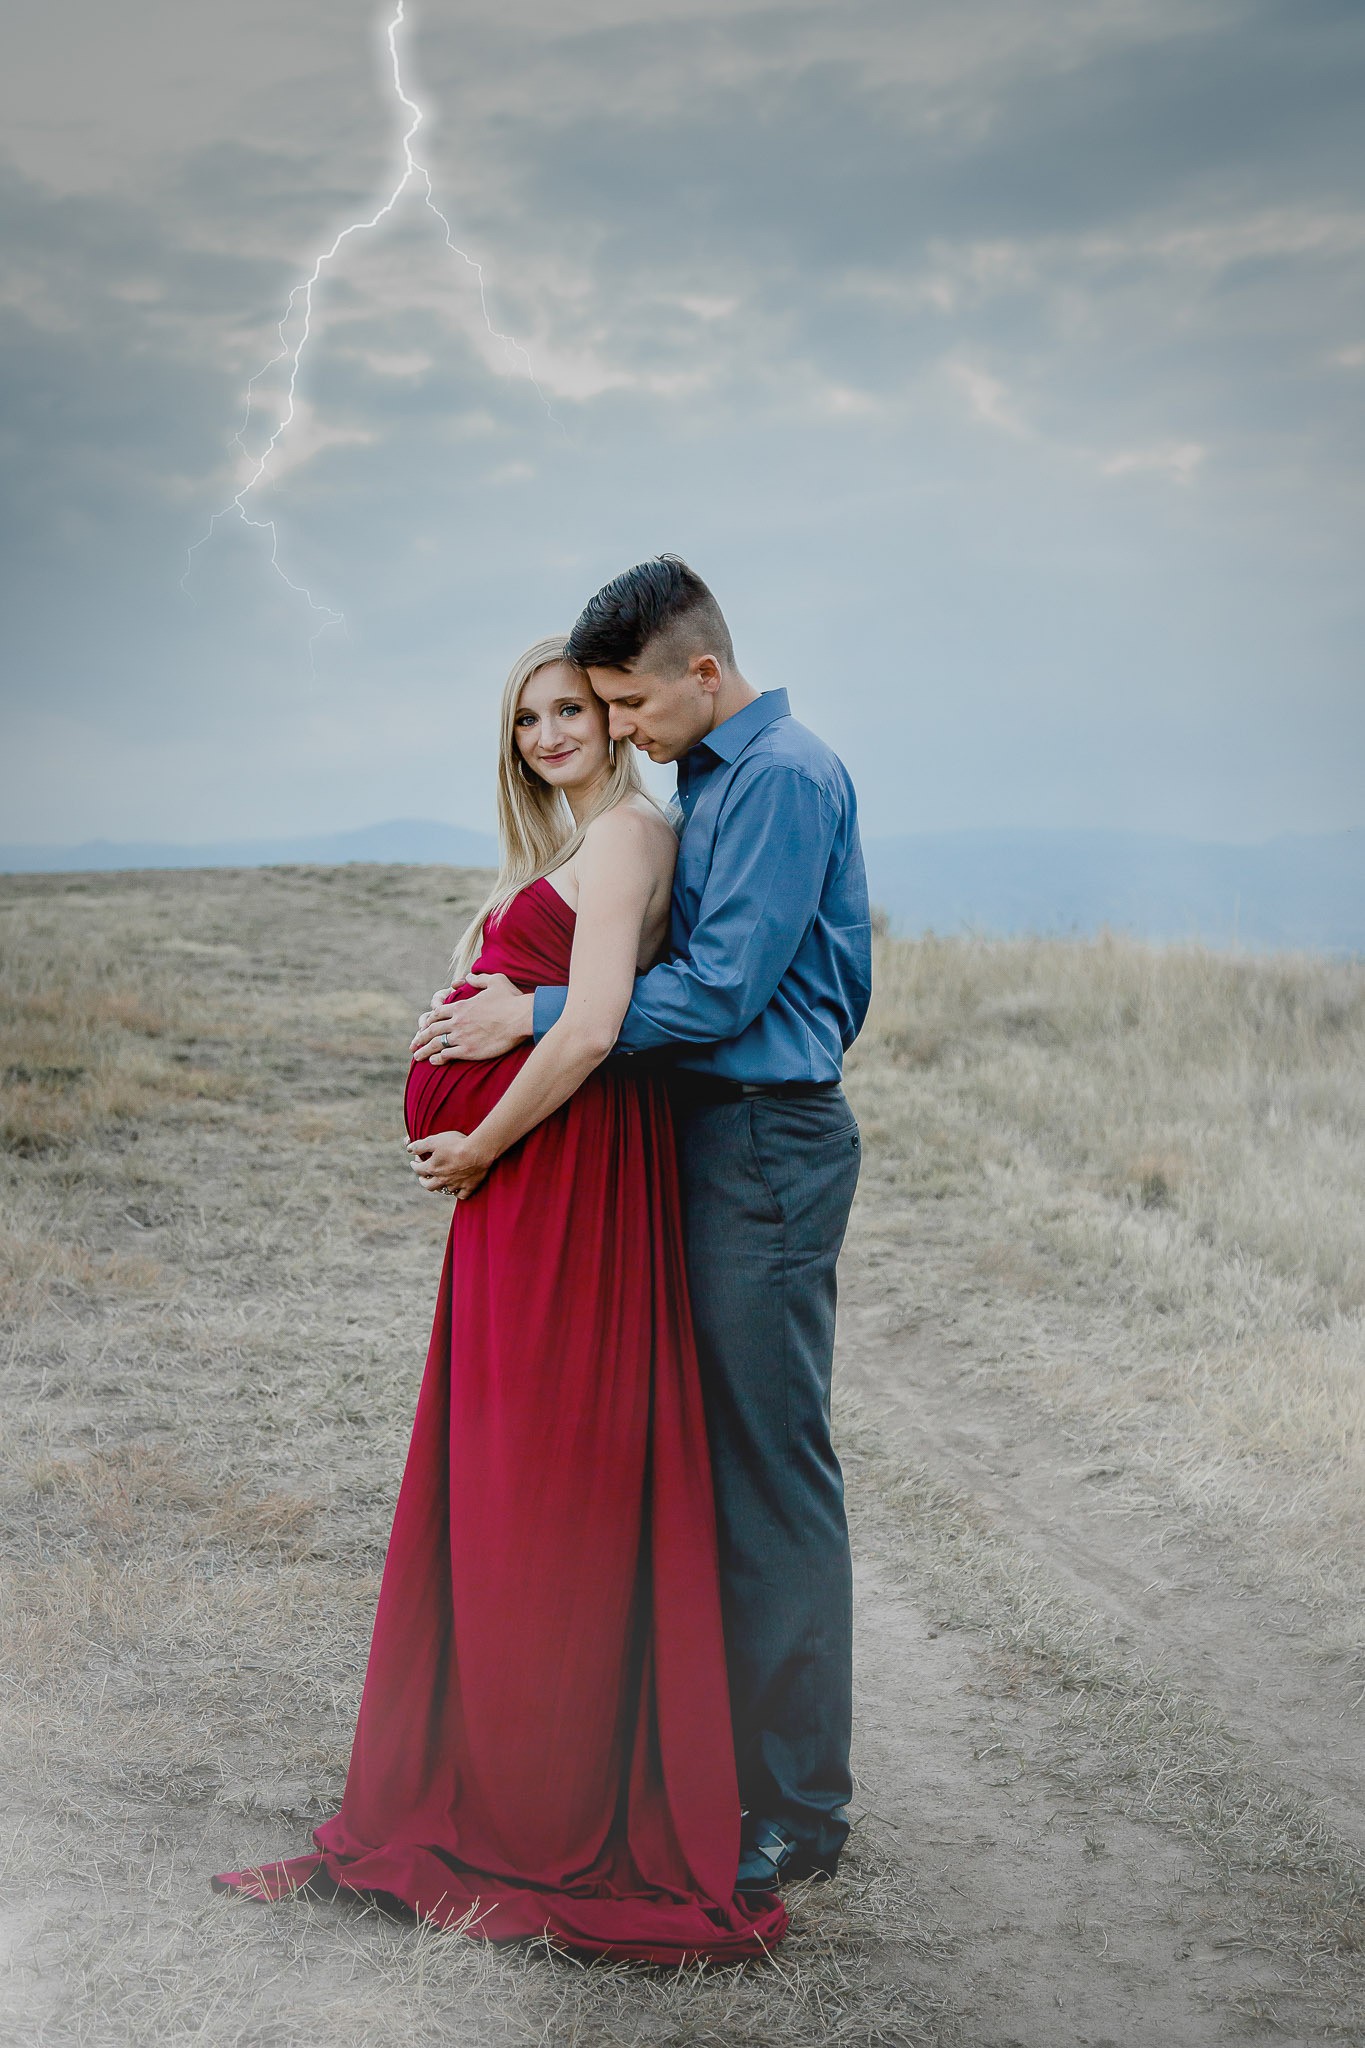 Foggy-Maternity-Red-Gown-Lightning-Littleton-Colorado.jpg